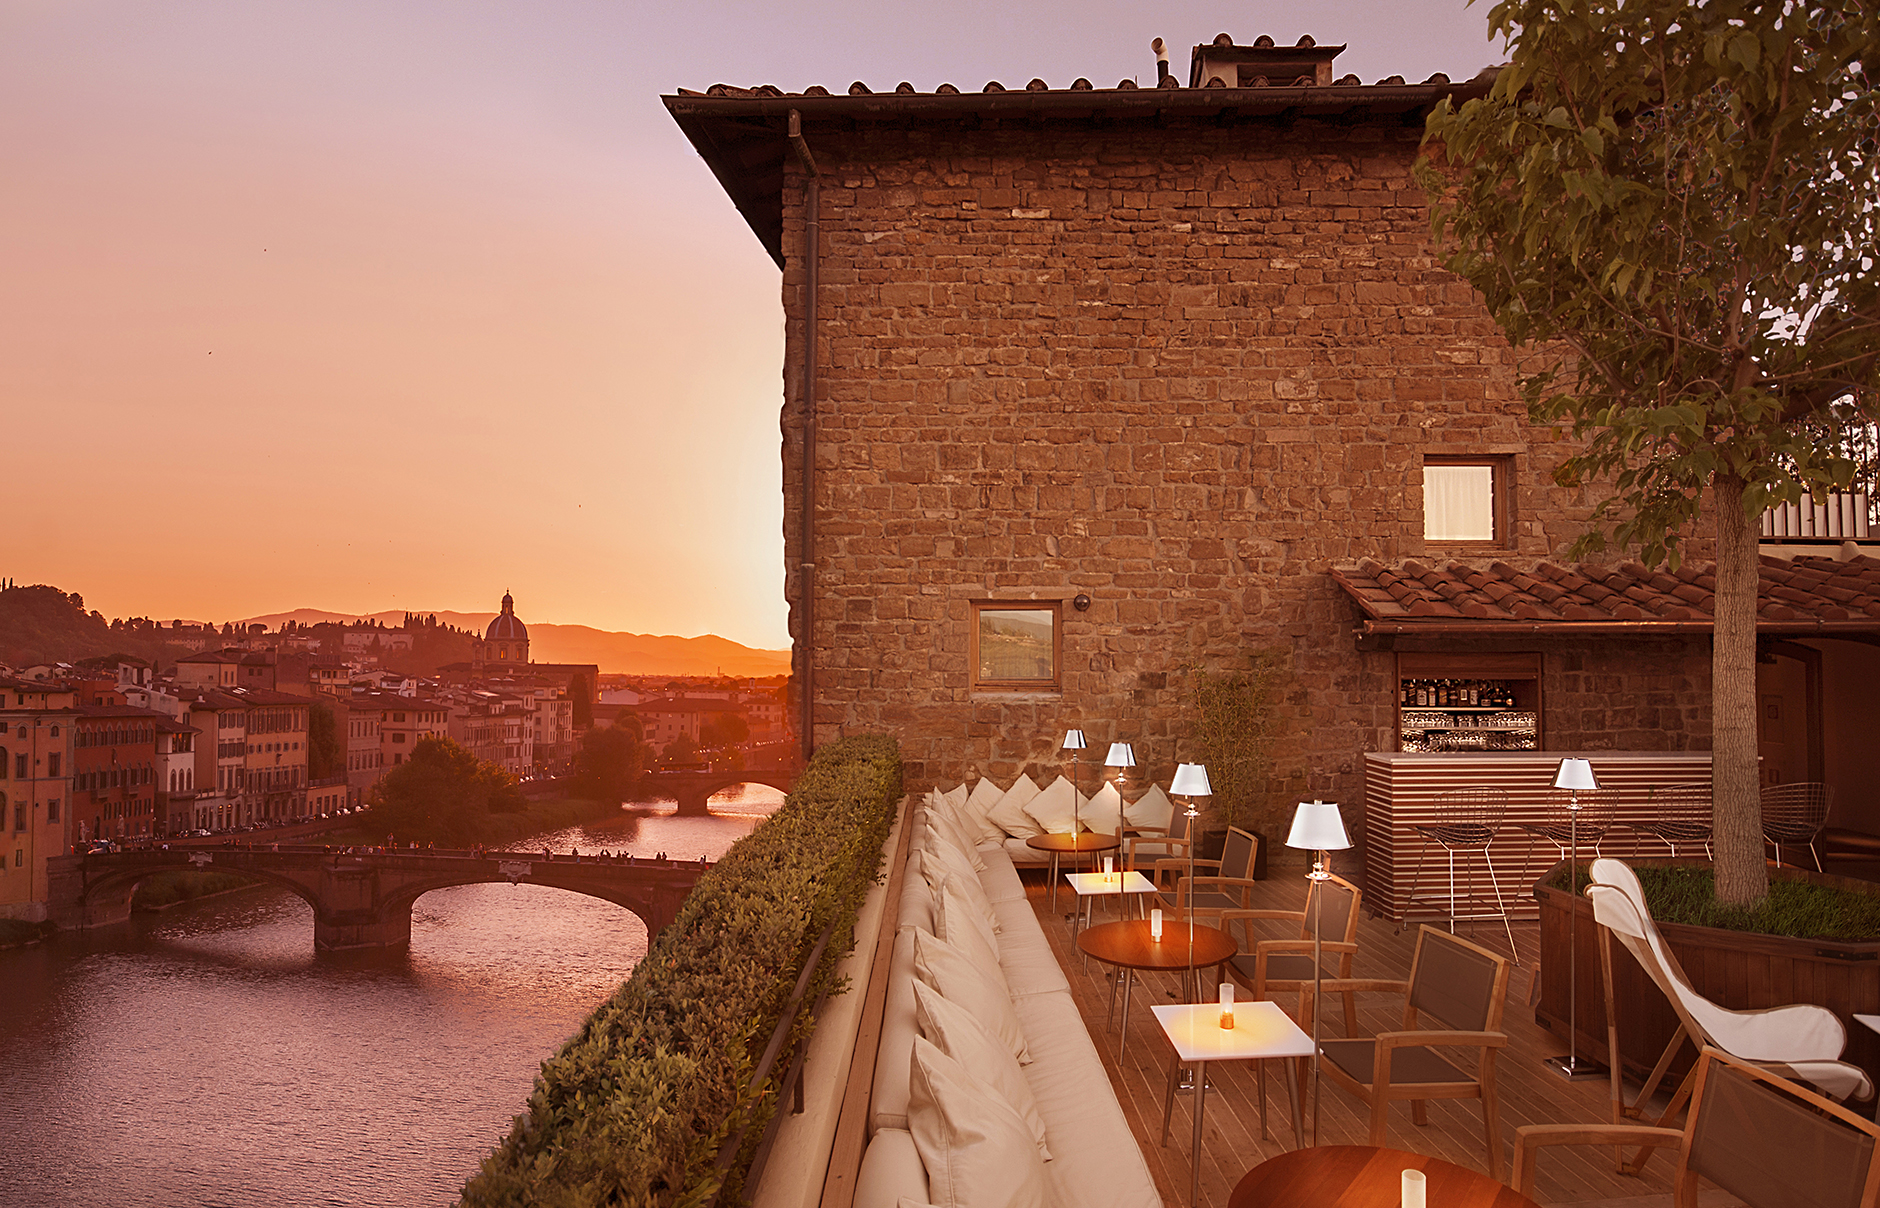 Boutique hotel continentale in florence unveils roof for Design boutique hotels colroy la roche